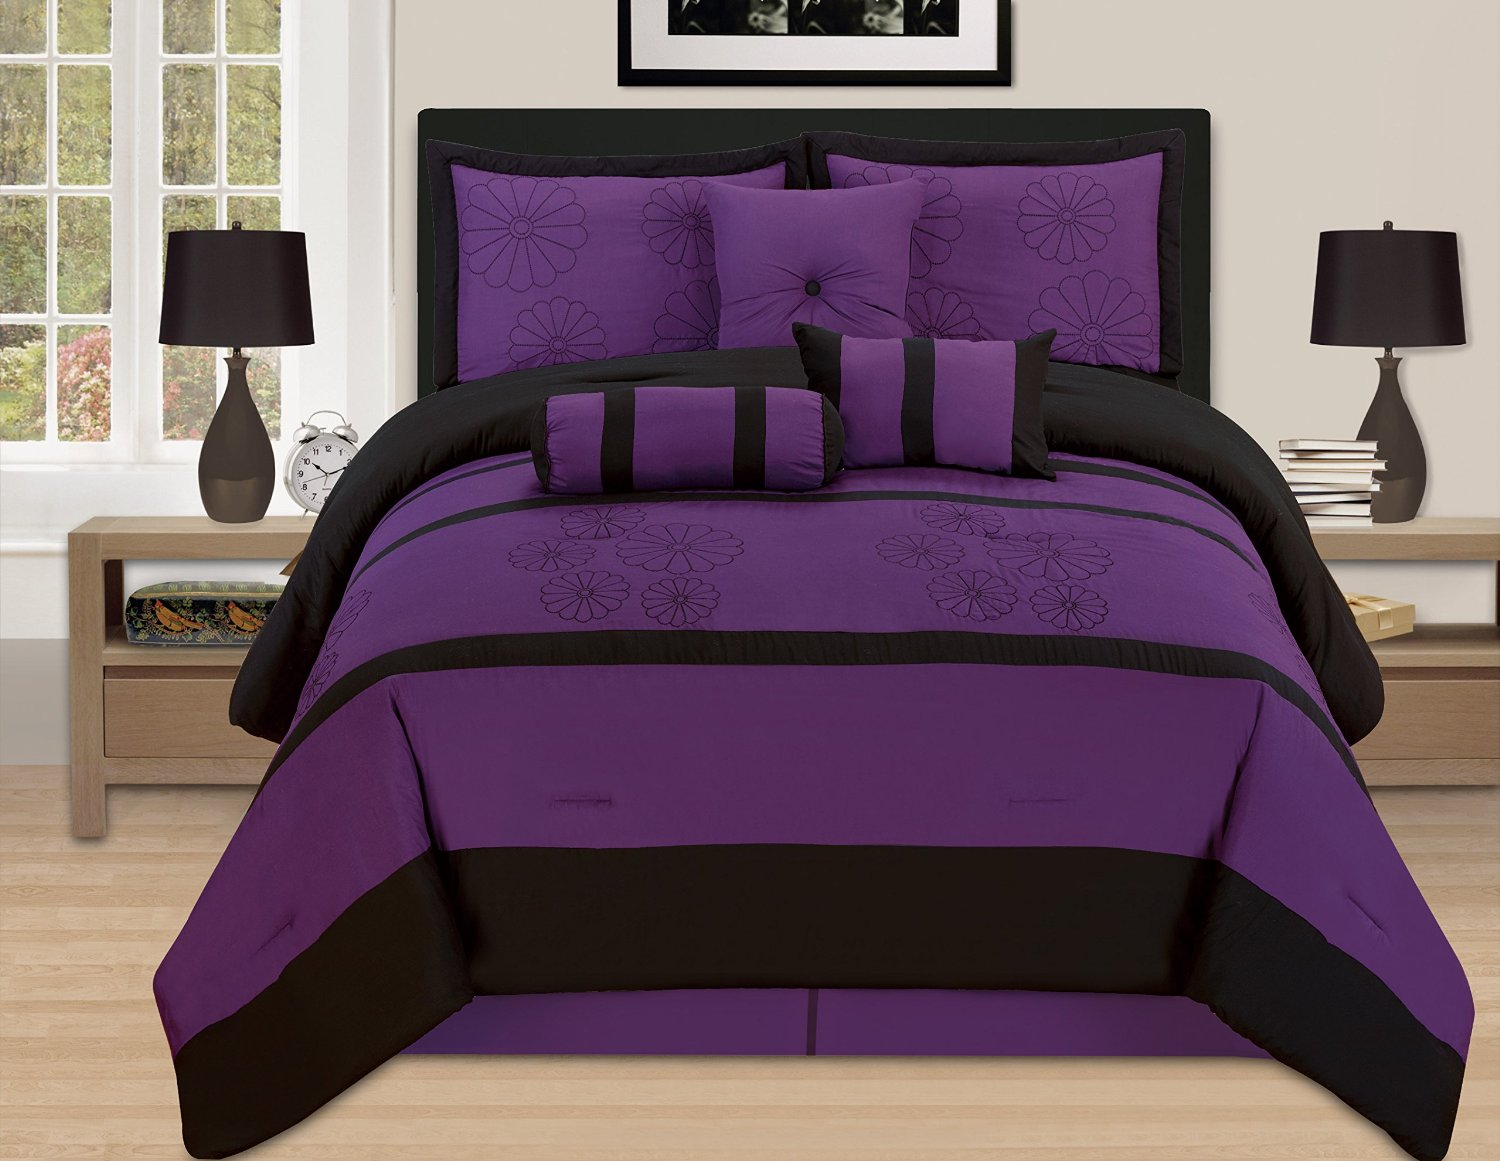 Black and purple bed sheets - 7 Piece Deep Dark Purple Comforter Bedding Set With Throw Pillows